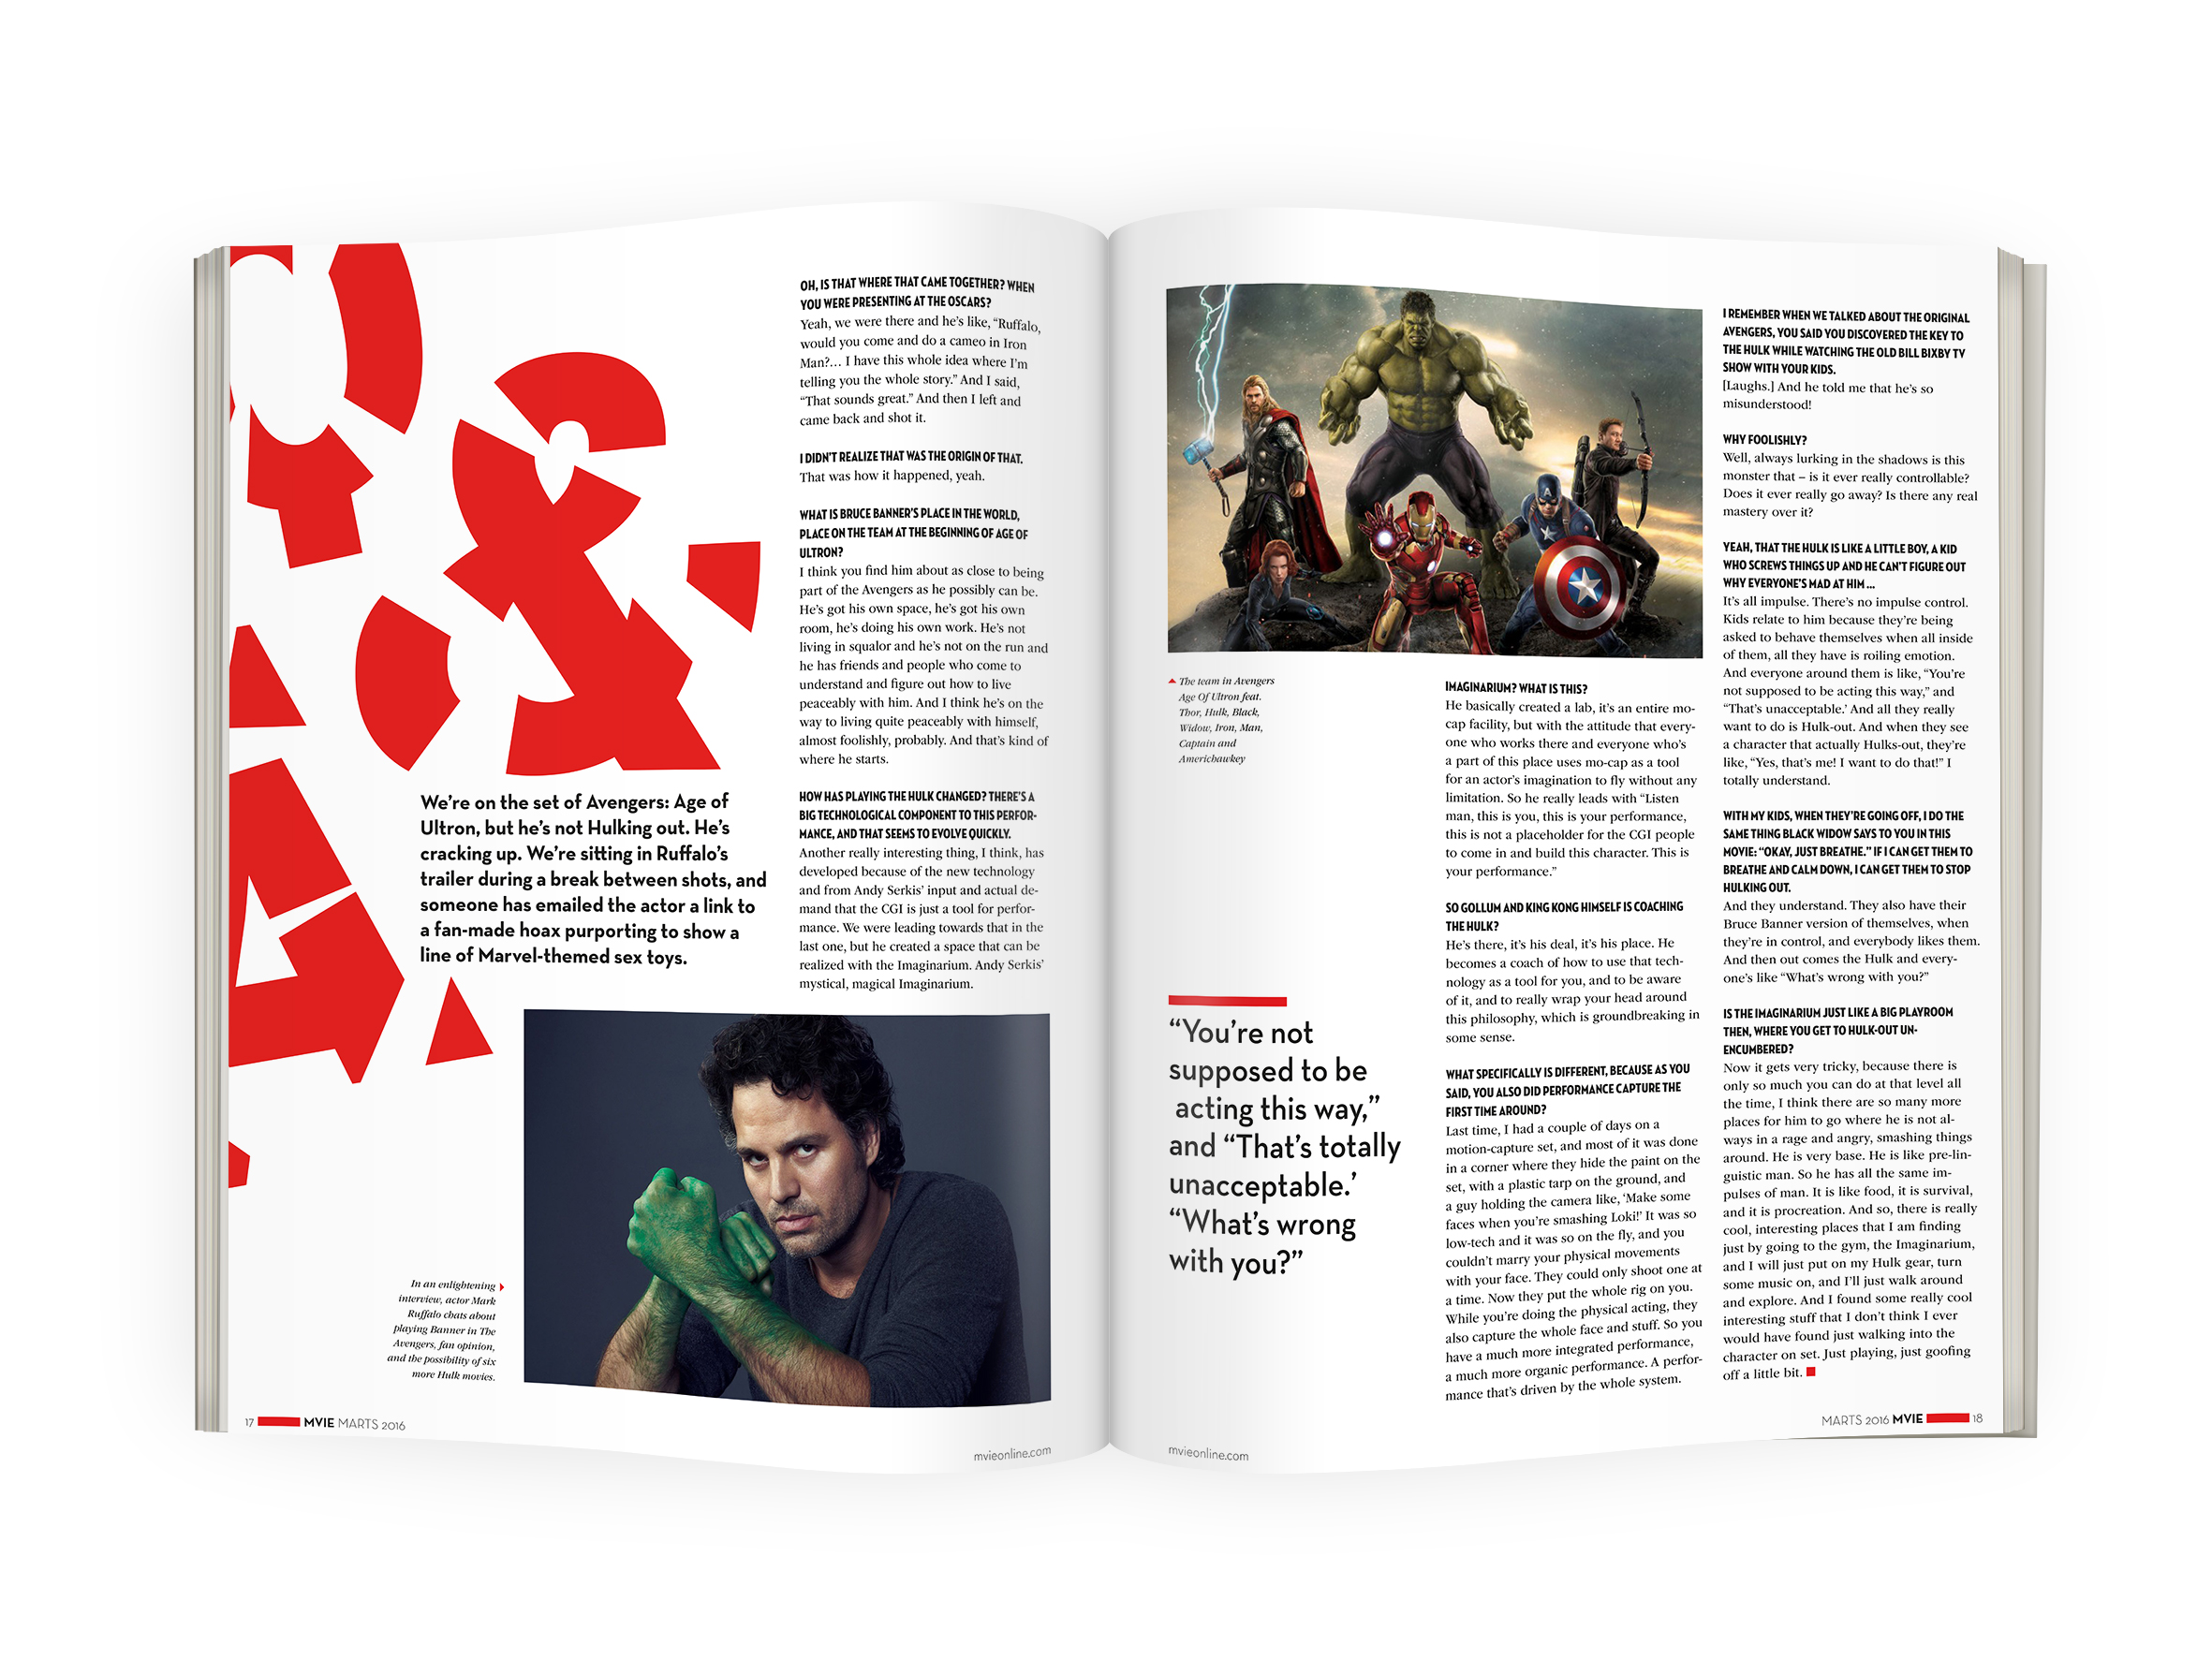 philipjohansen_magazine_text